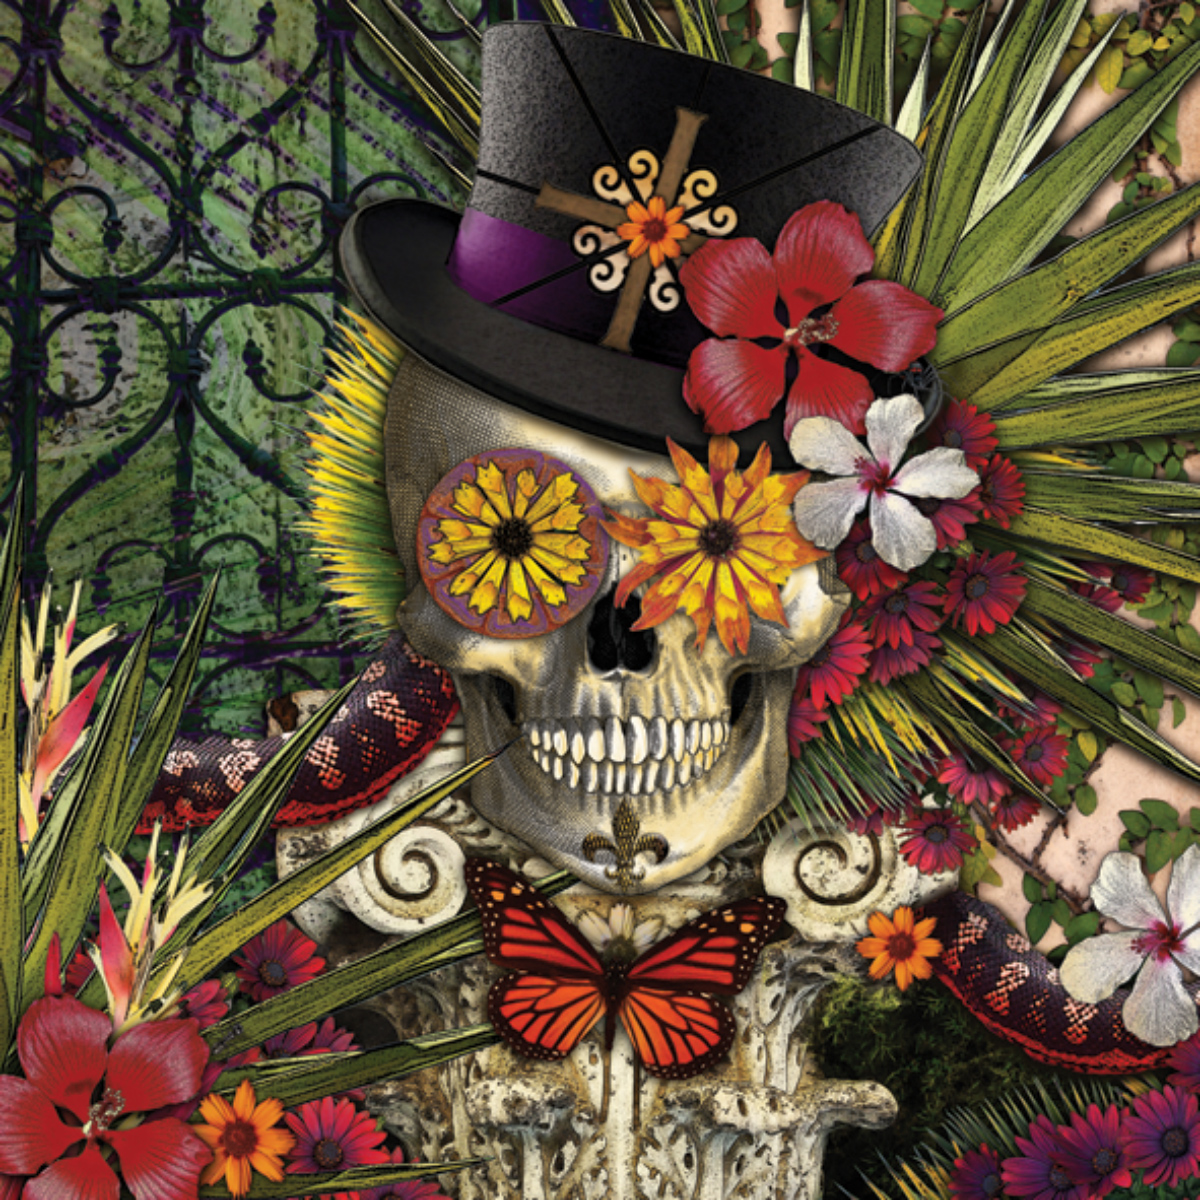 Baron in Bloom Gothic Jigsaw Puzzle